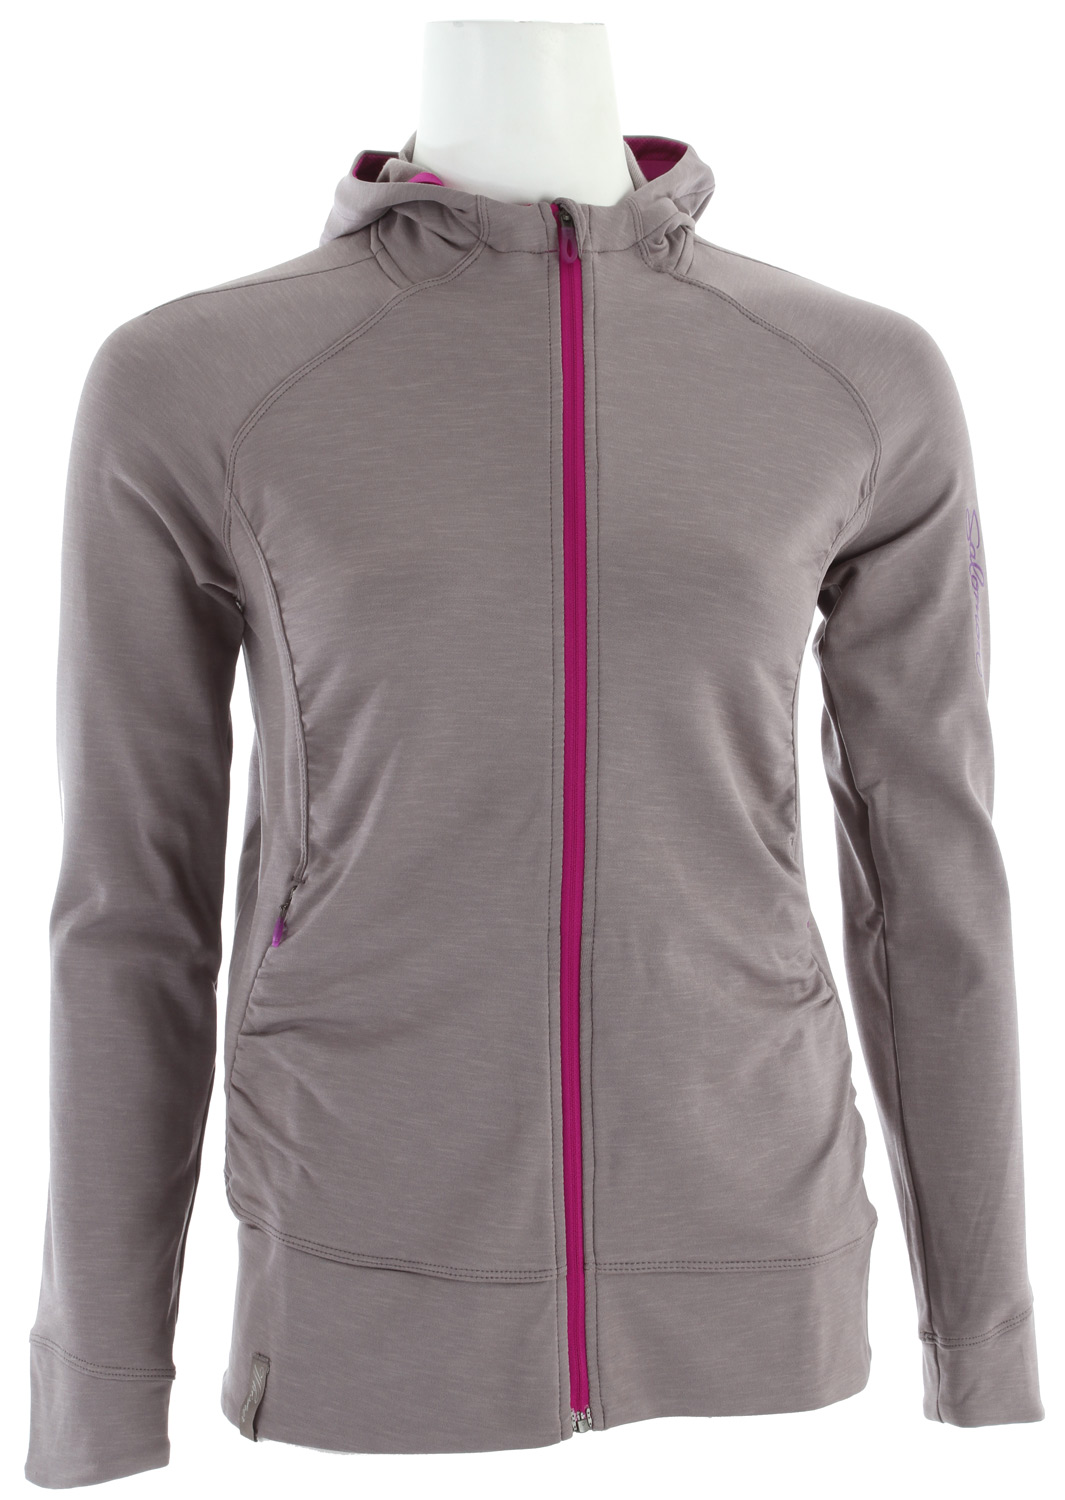 Fitness This soft, feminine looking hoody is both comfortable and casual, ideal for running or everyday.Key Features of the Salomon Whisper II Midlayer Hoodie: Actitherm uneven twill 2 zipped pockets Reflective branding Insert: PES 91% EL 9% Body: PES 89% EL - $61.95